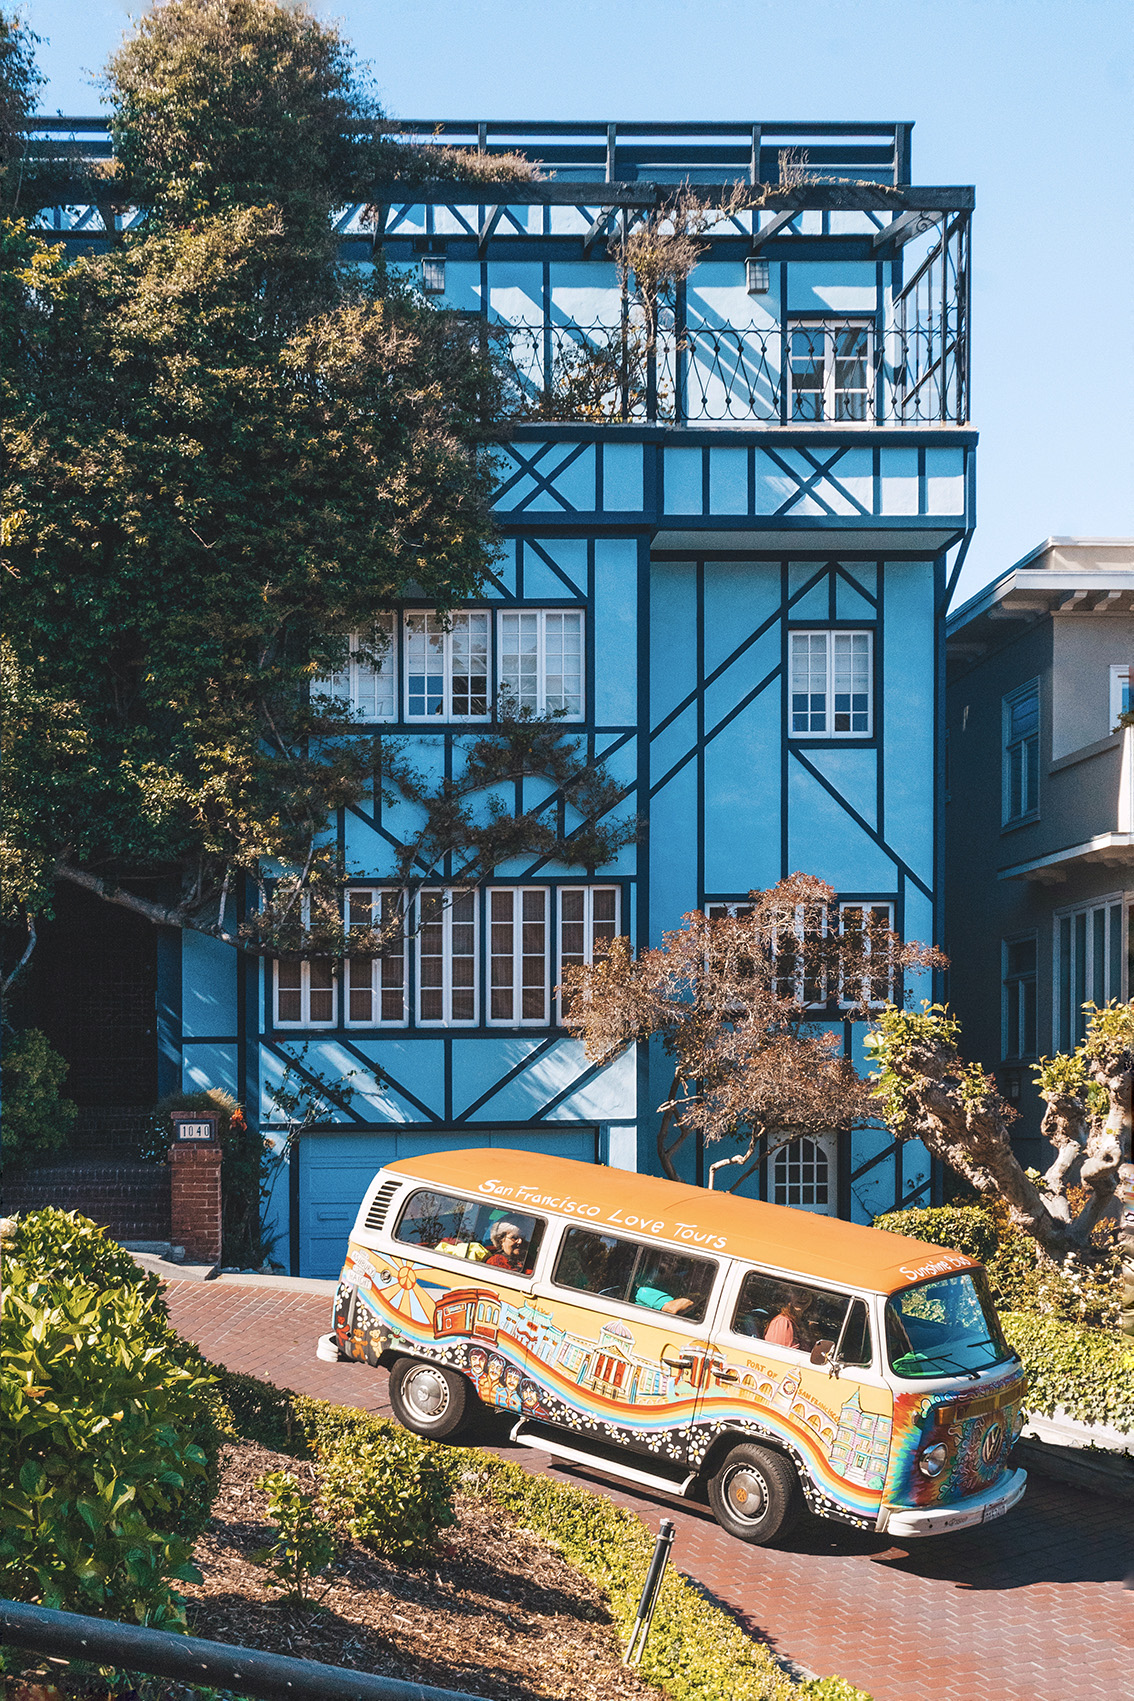 23 10 most instagrammable places in San Francisco you don't have to miss!